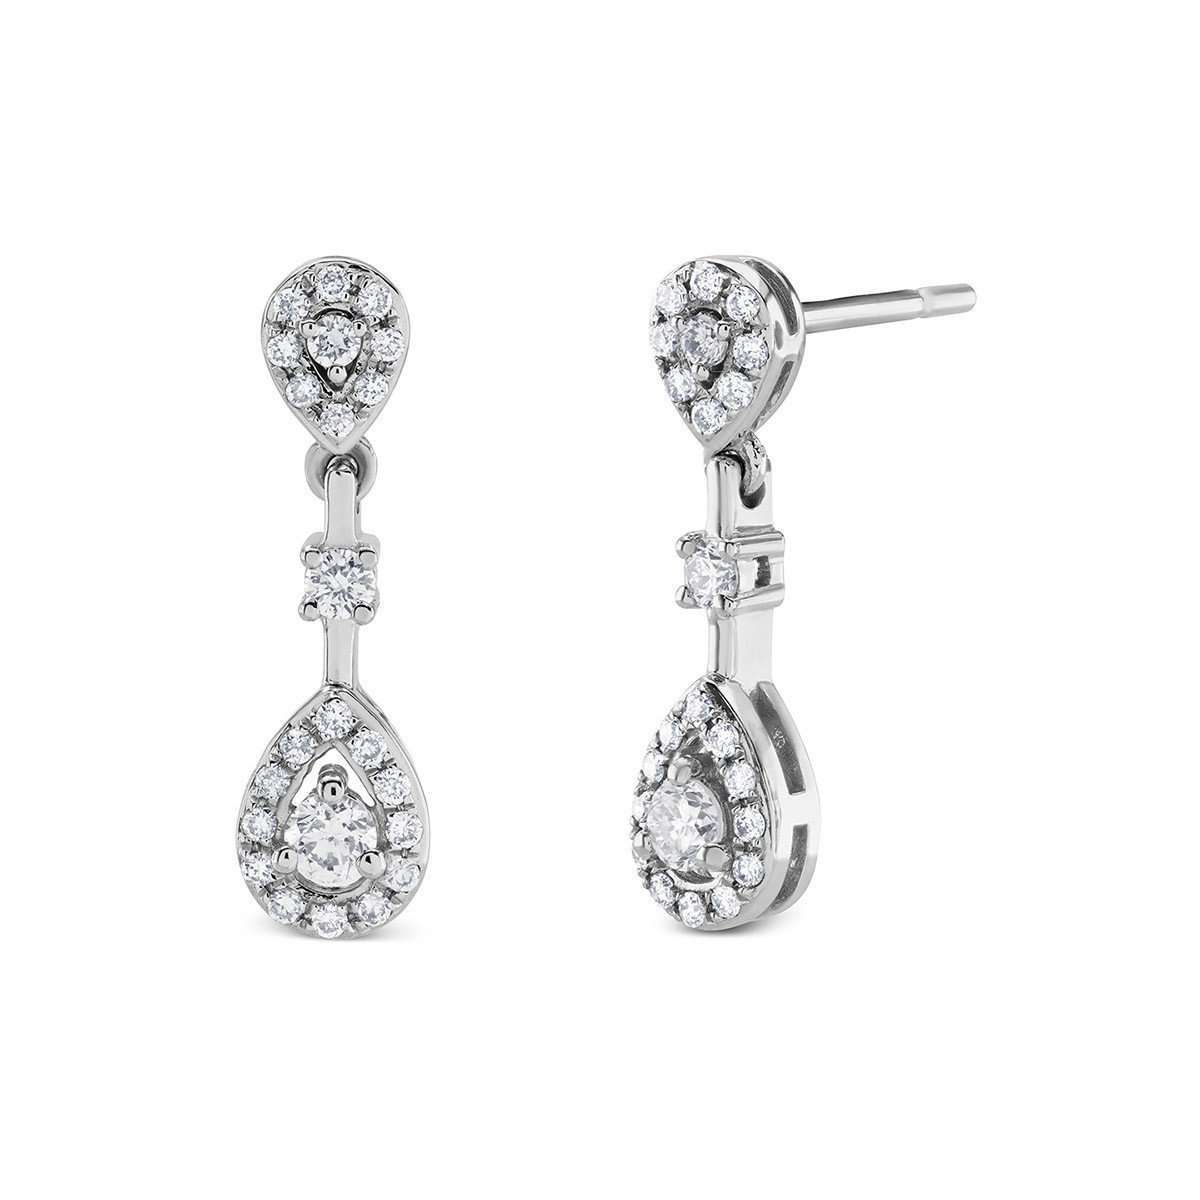 14kt White Gold Diamond Pear Shape Cluster Drop Earrings-Marmalade Fine Jewellery-JewelStreet US